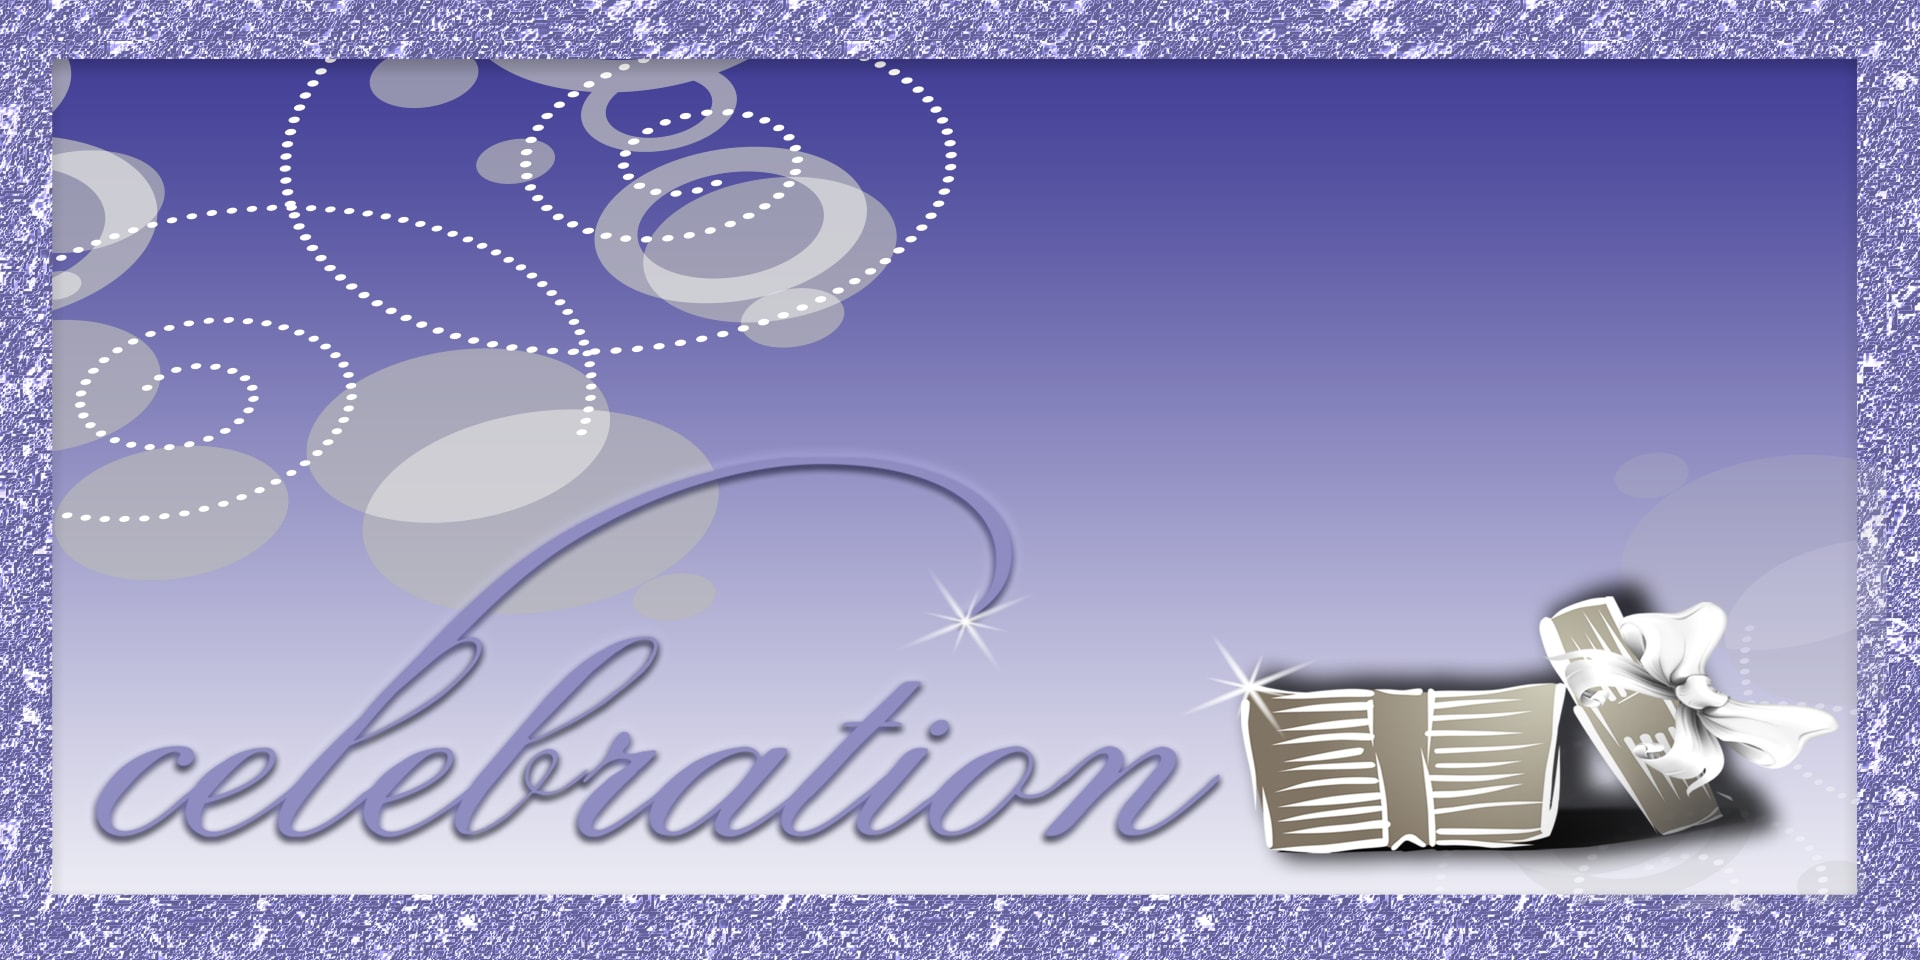 Celebration Banners Gift Purple